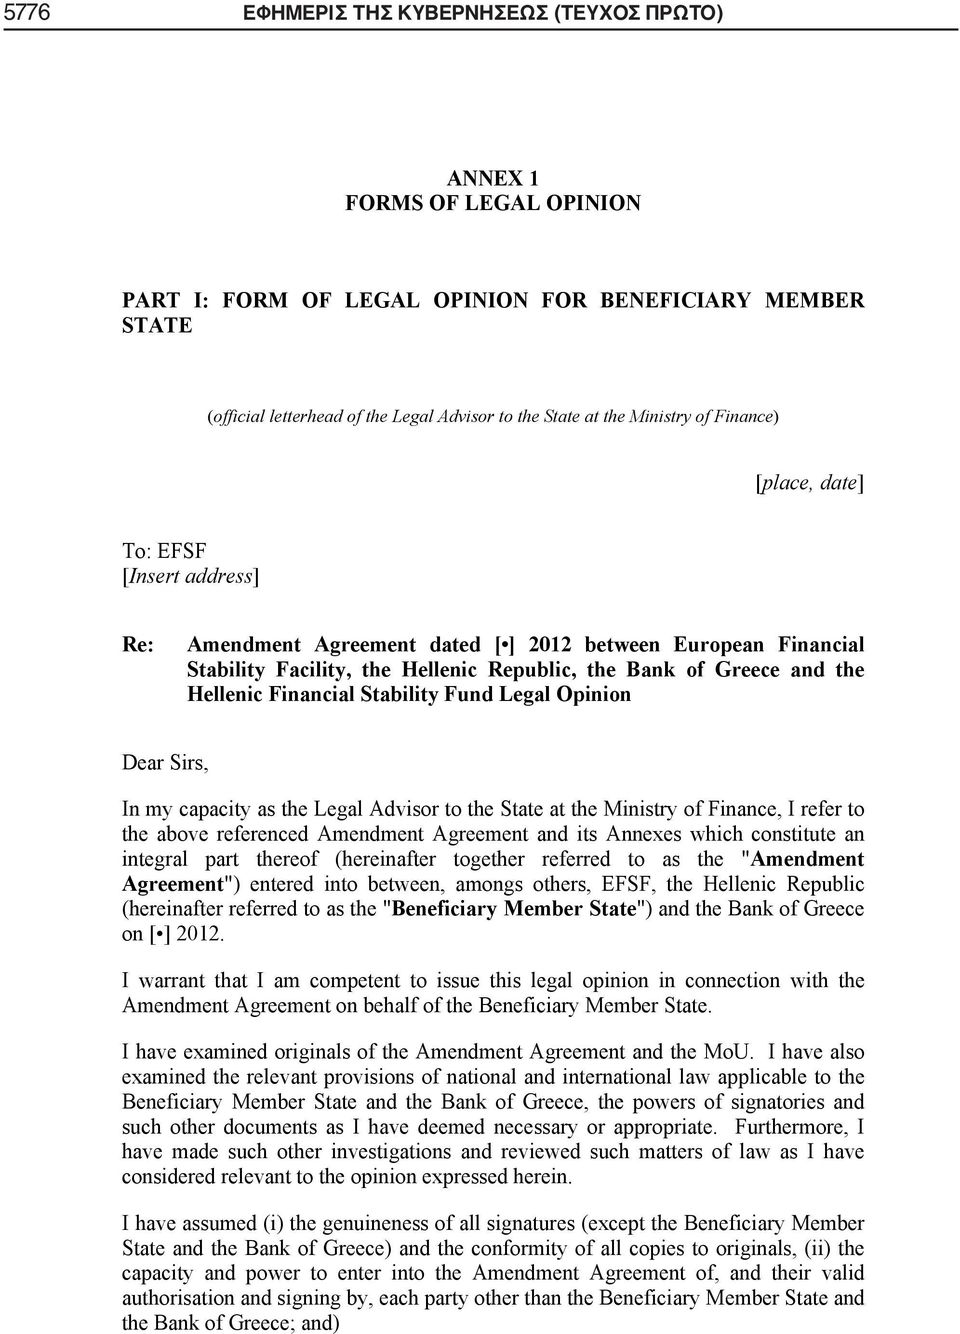 Hellenic Financial Stability Fund Legal Opinion Dear Sirs In my capacity as the Legal Advisor to the State at the Ministry of Finance I refer to the above referenced Amendment Agreement and its